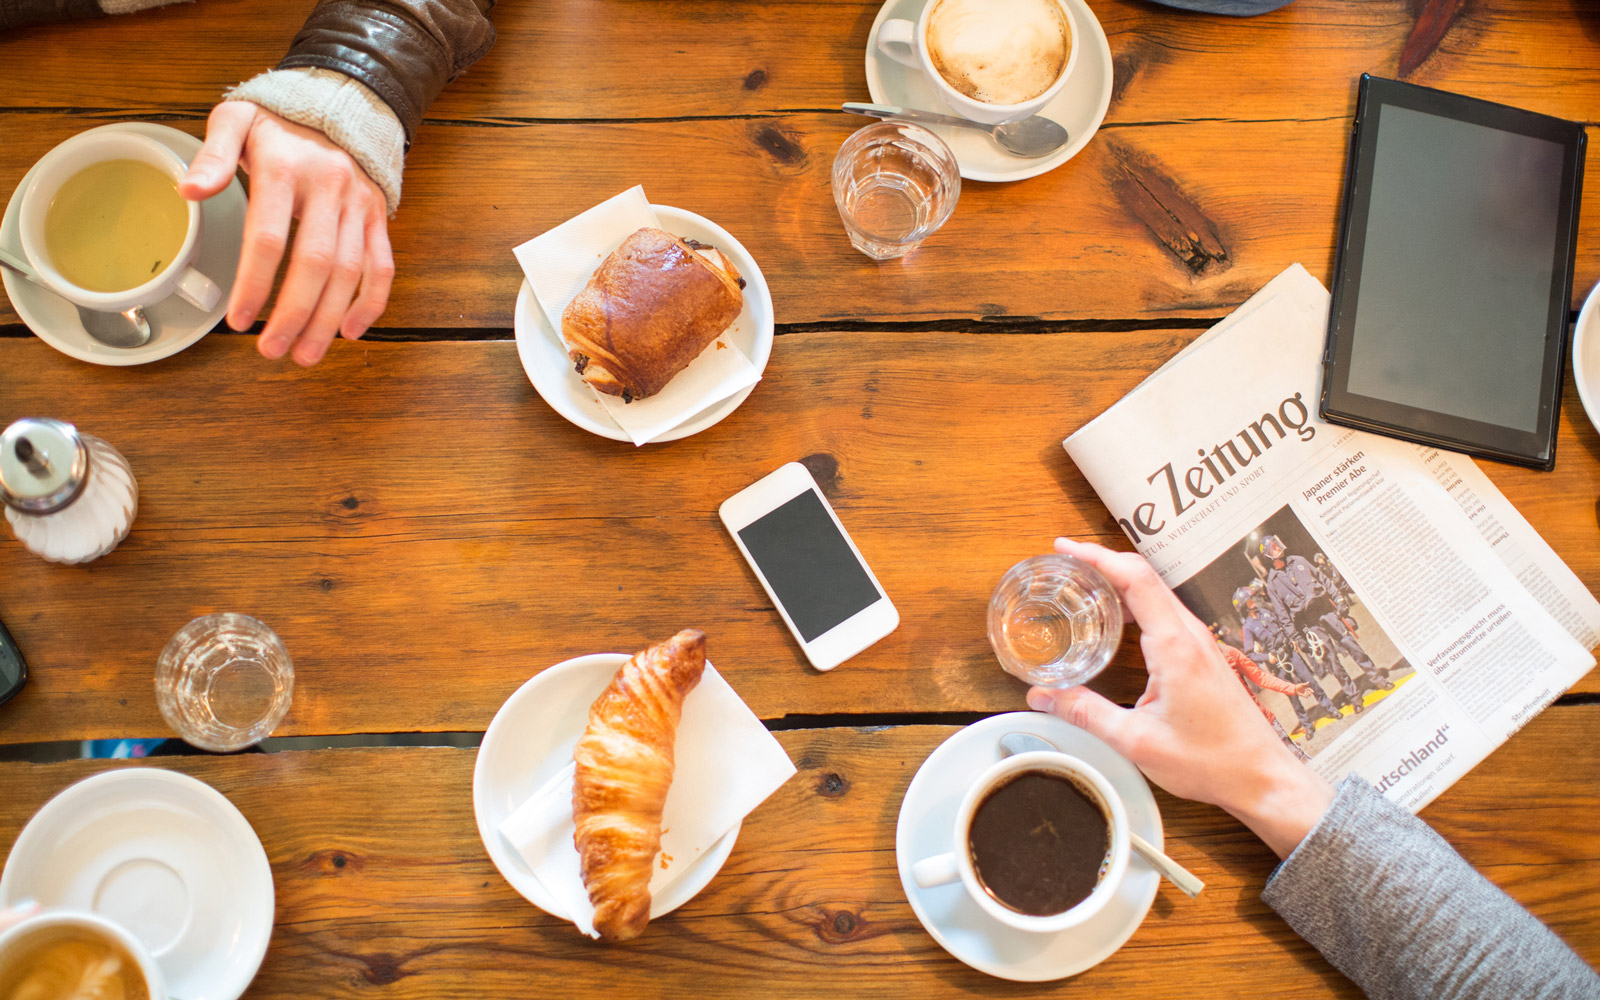 Drinking More Coffee Is Associated With a Longer Life